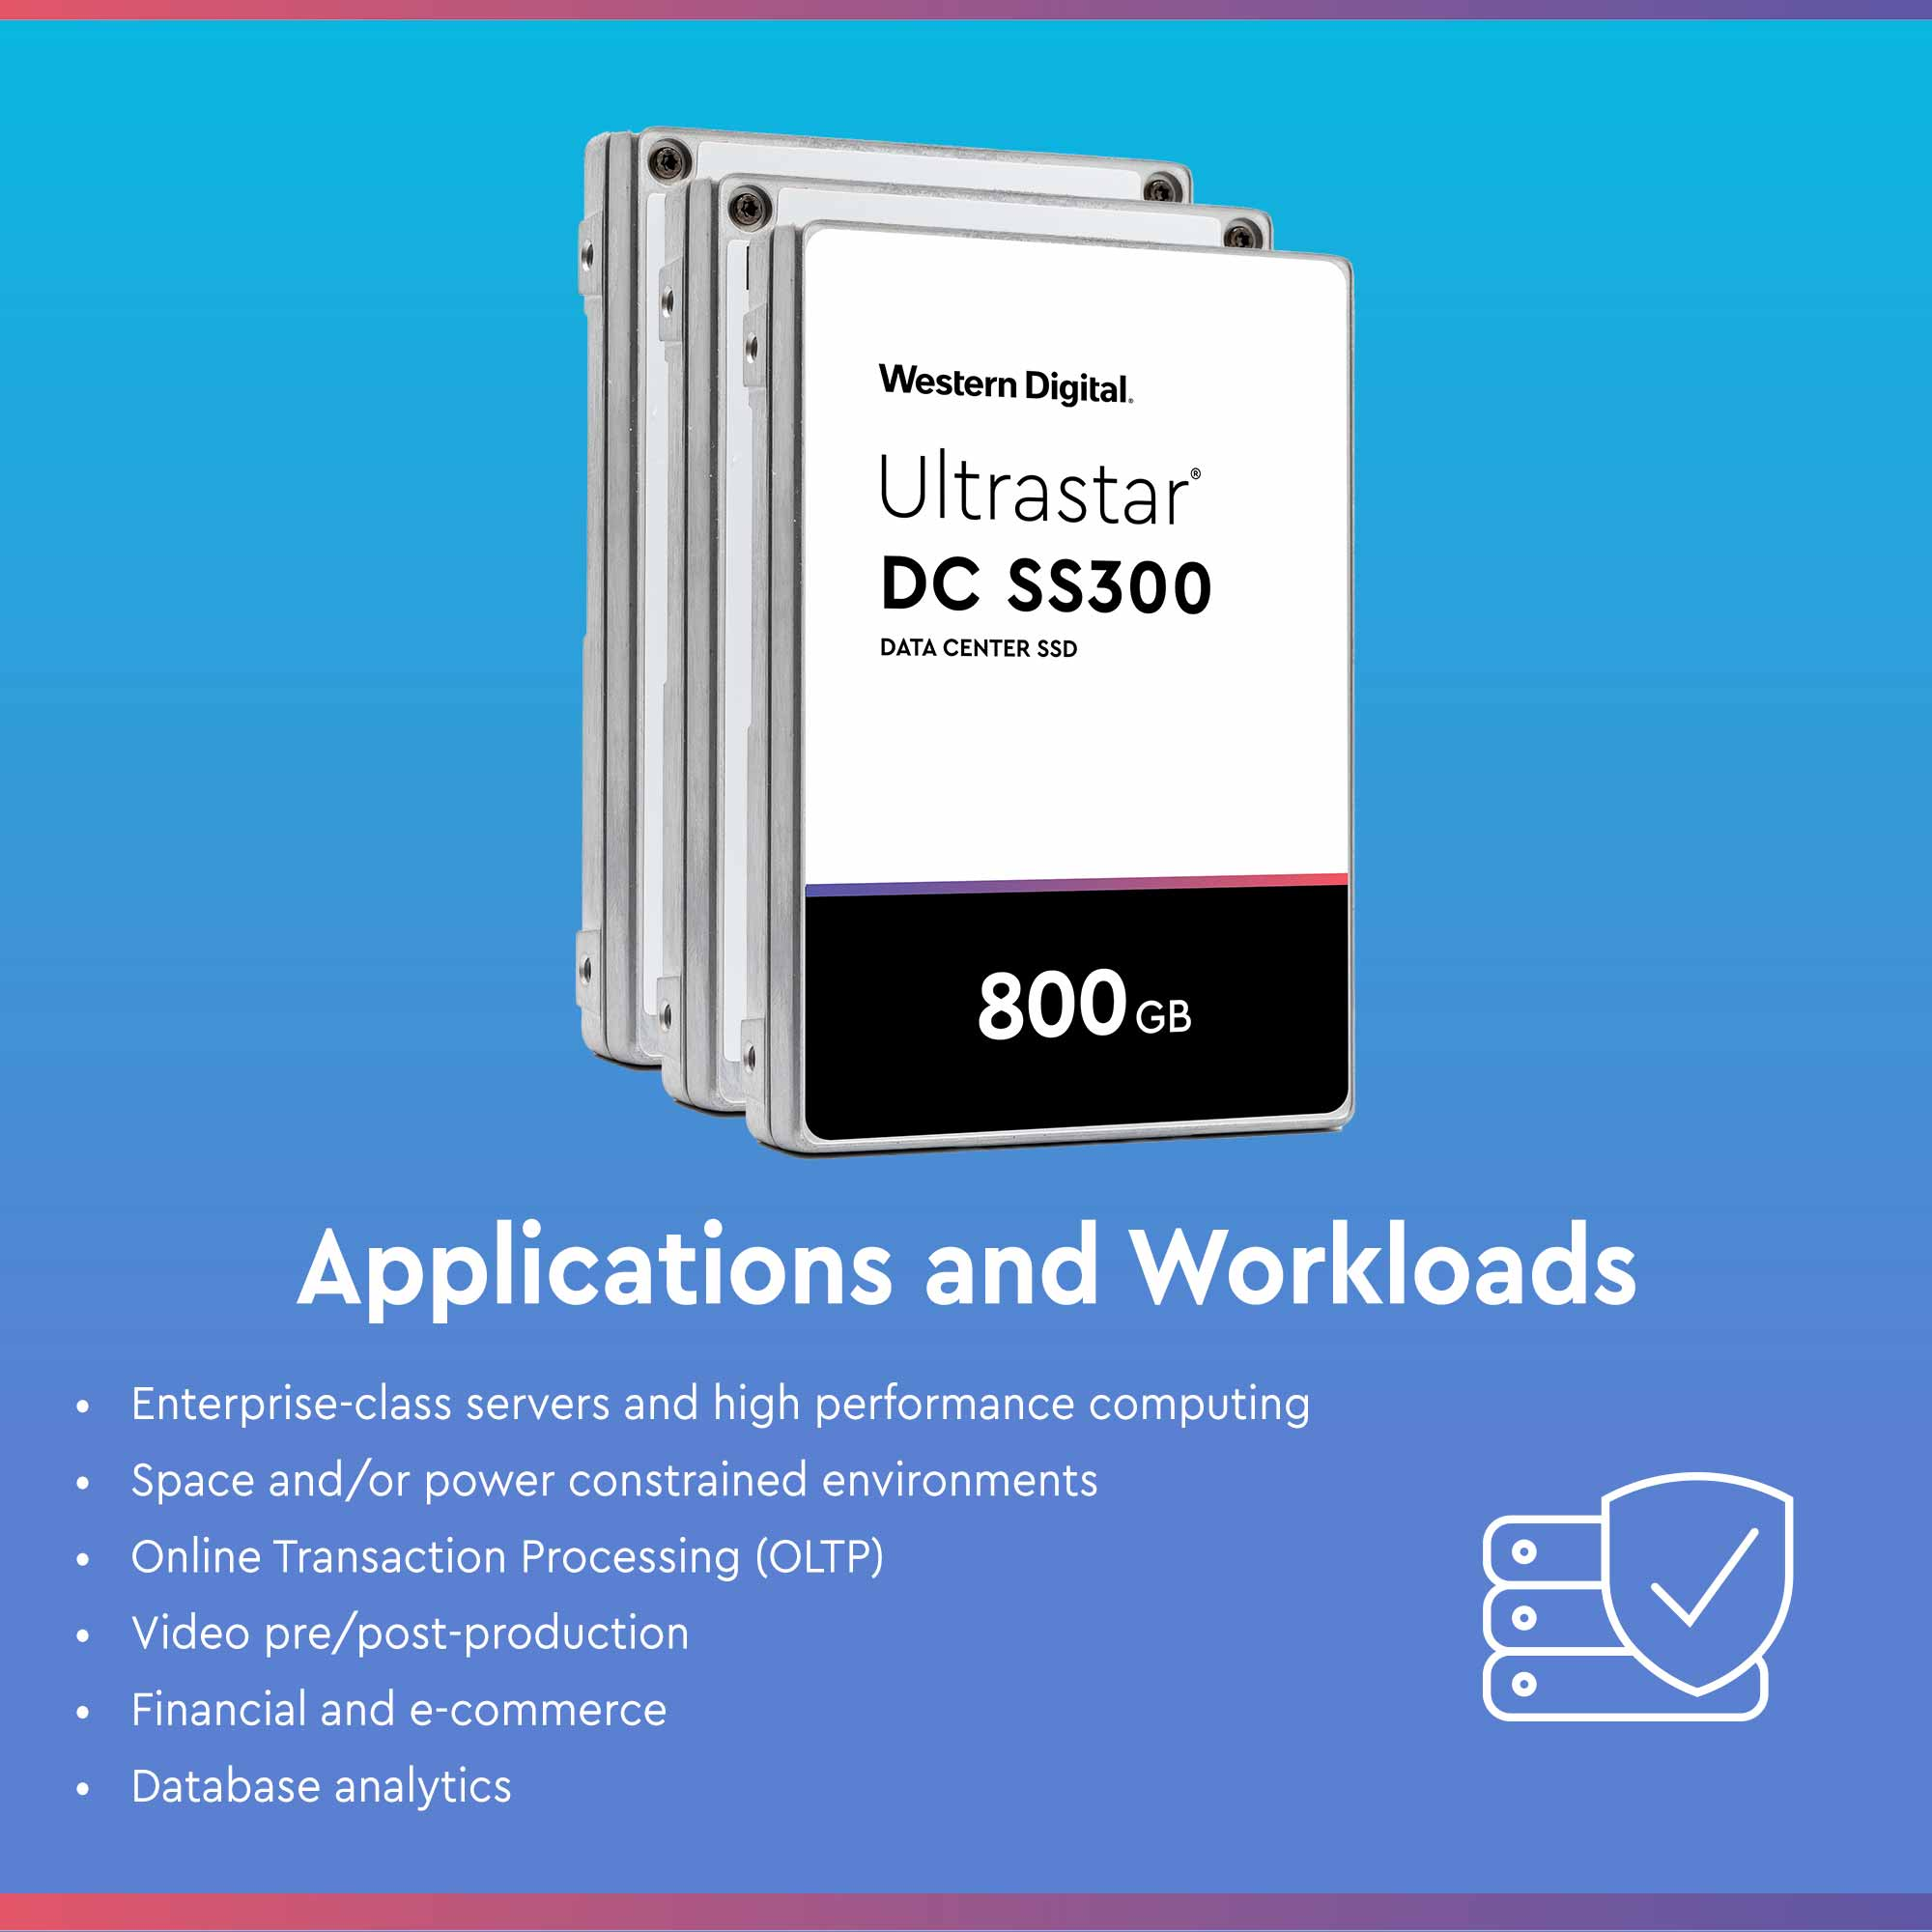 Western Digital DC SS300 HUSMM3280ASS204 800GB SAS 12Gb/s 512e 2.5in Refurbished SSD - Applications and Workloads